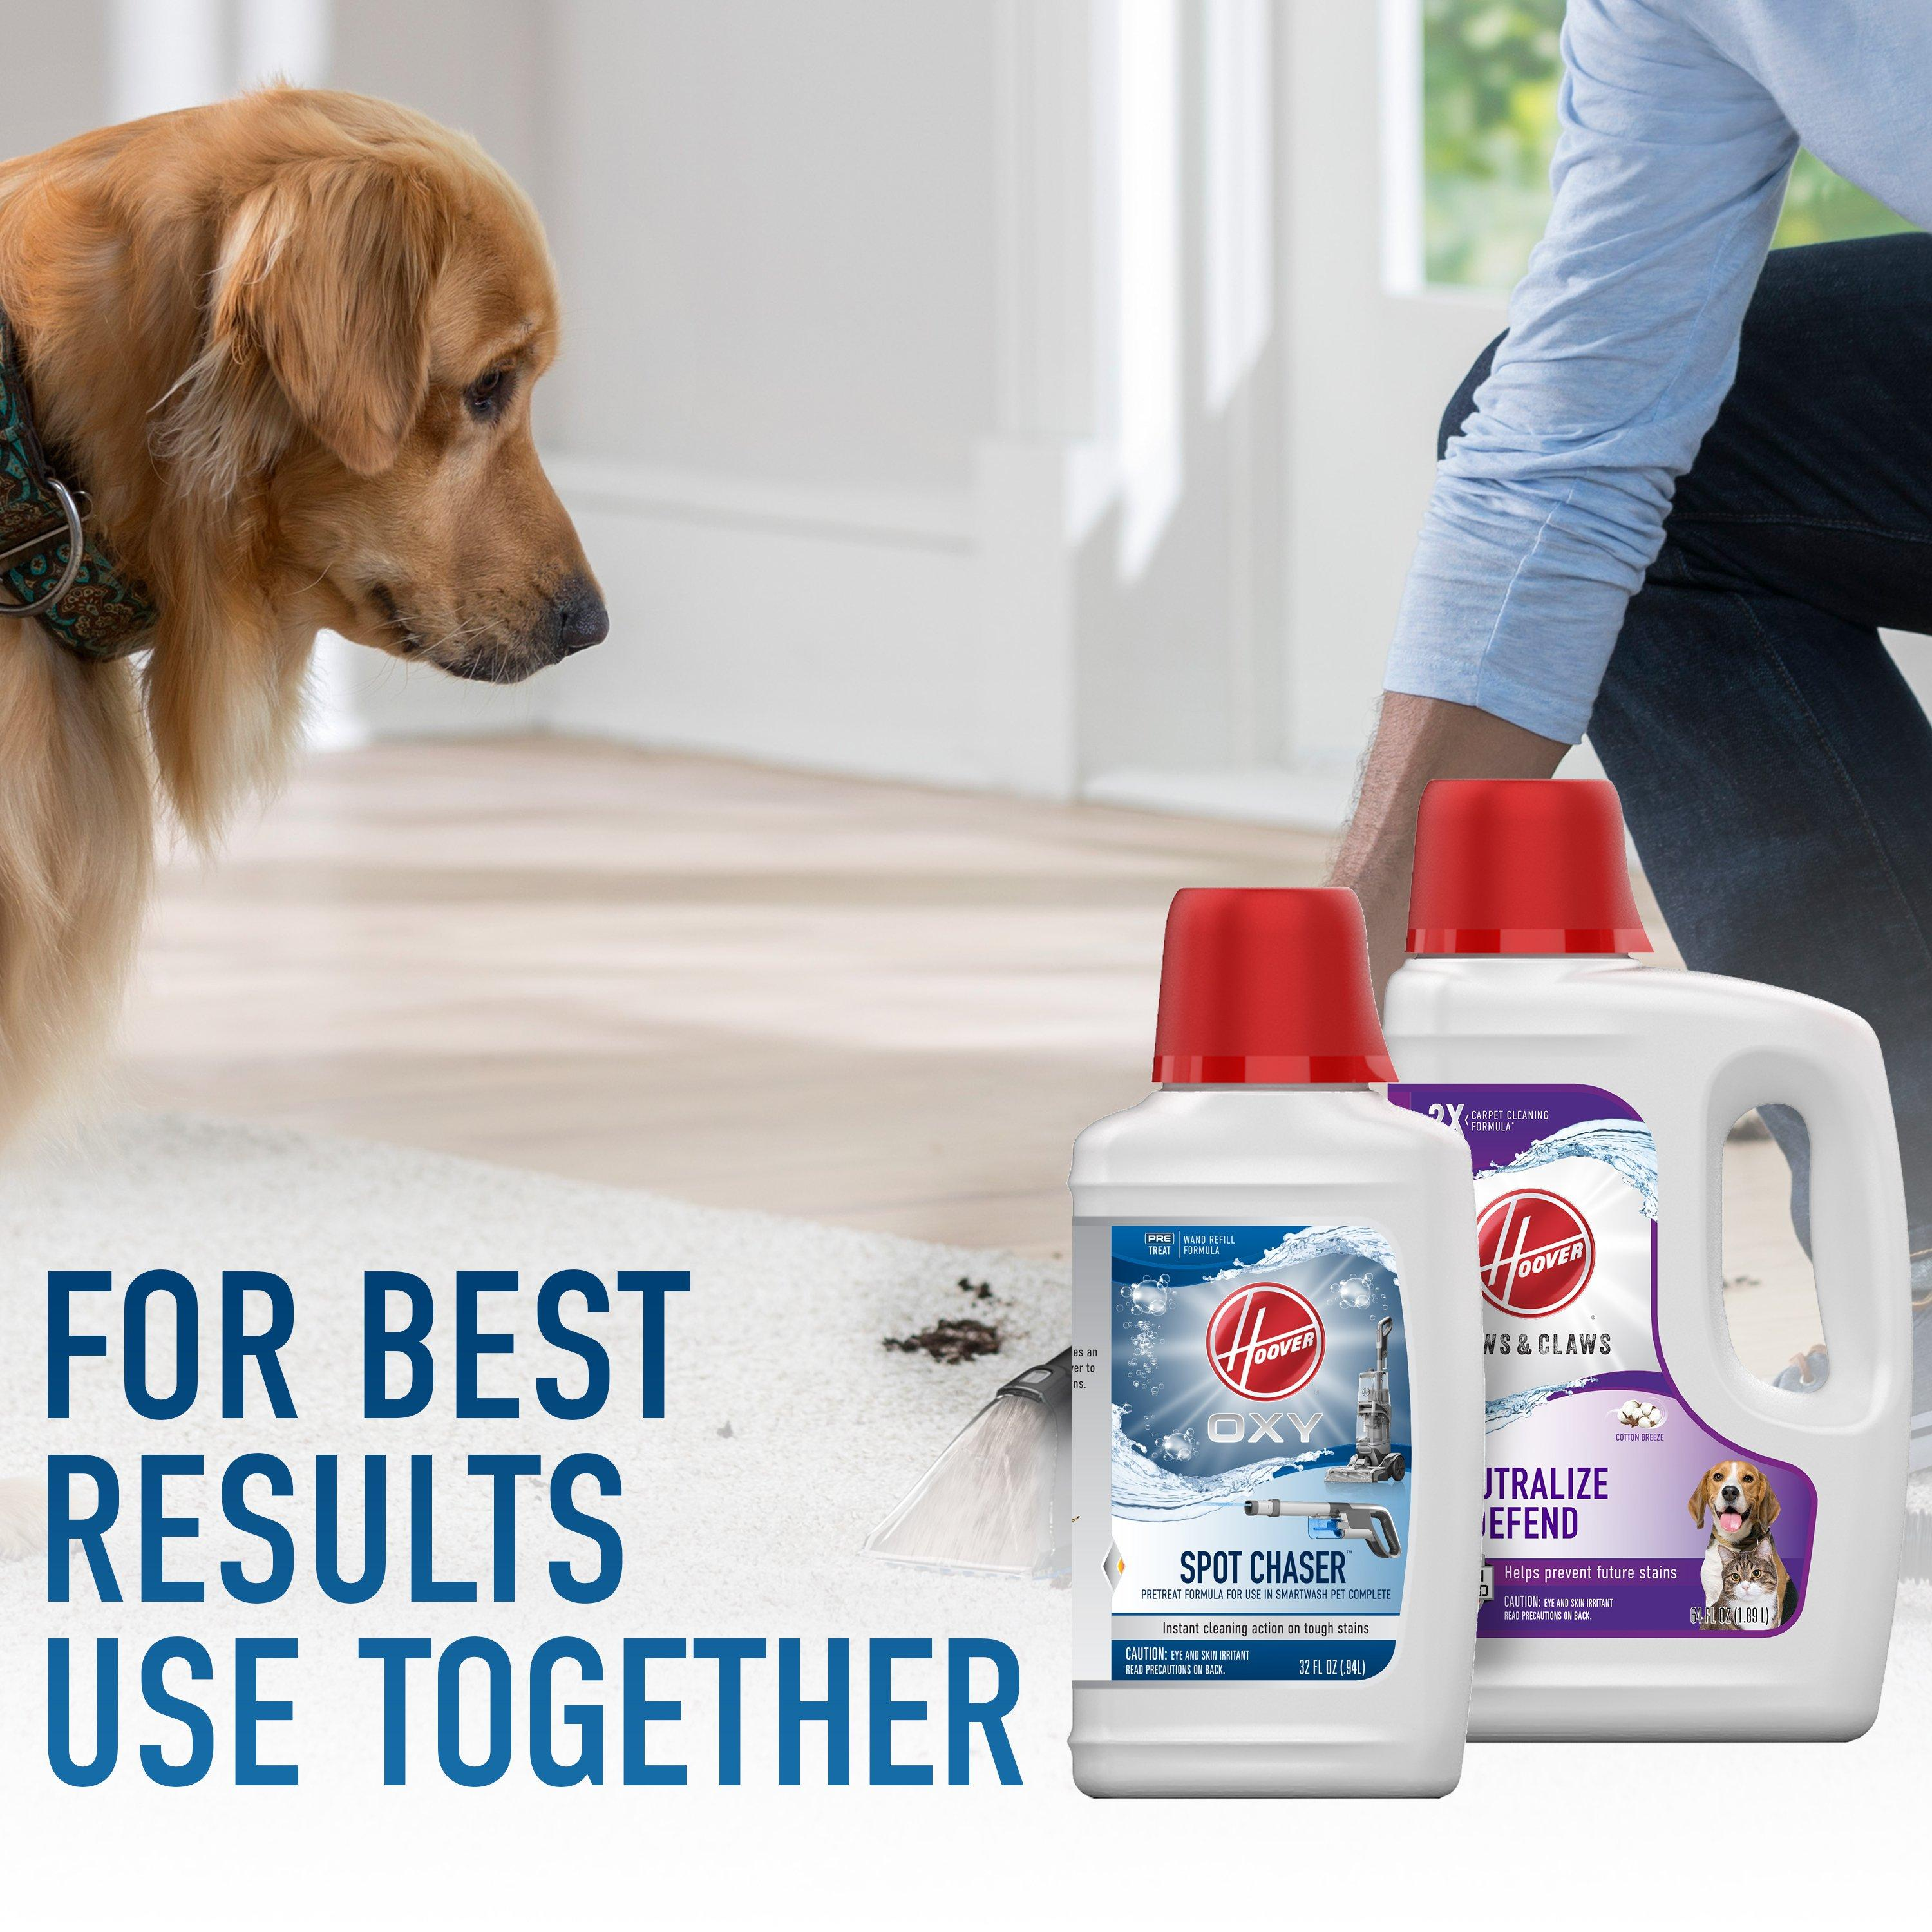 Oxy Spot Chaser Stain Remover7